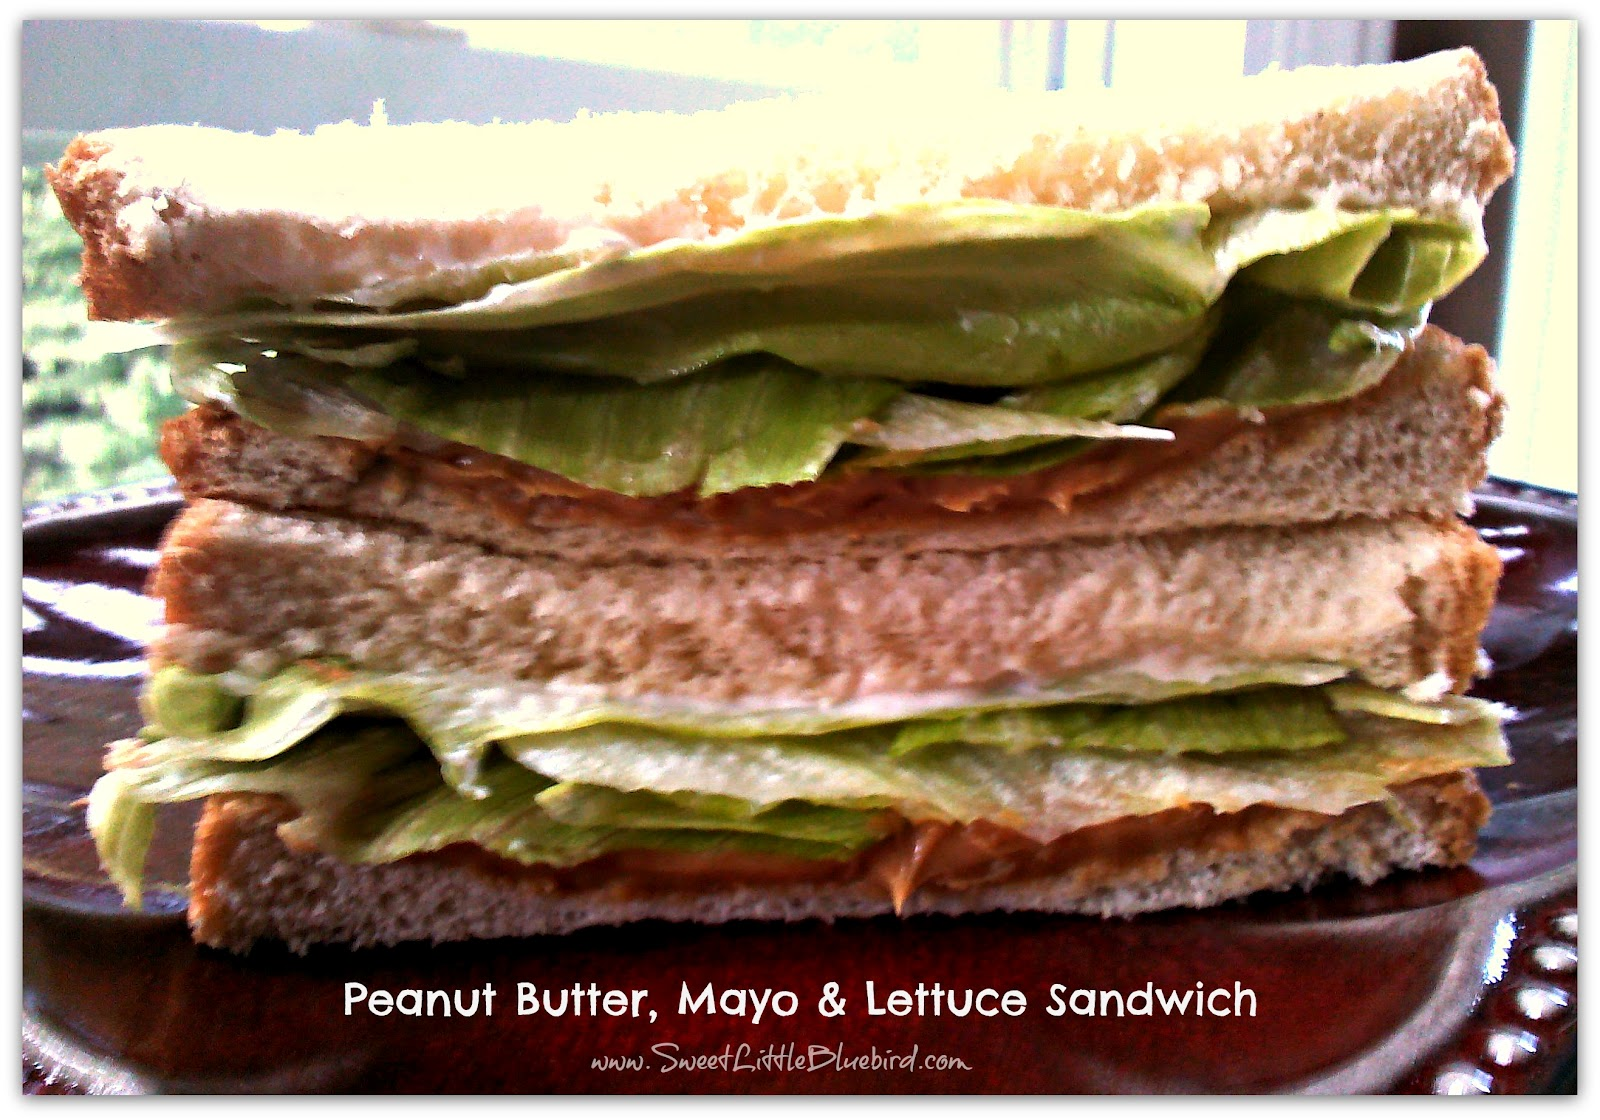 Depression era sandwich archives sweet little bluebird depression era sandwich forumfinder Gallery